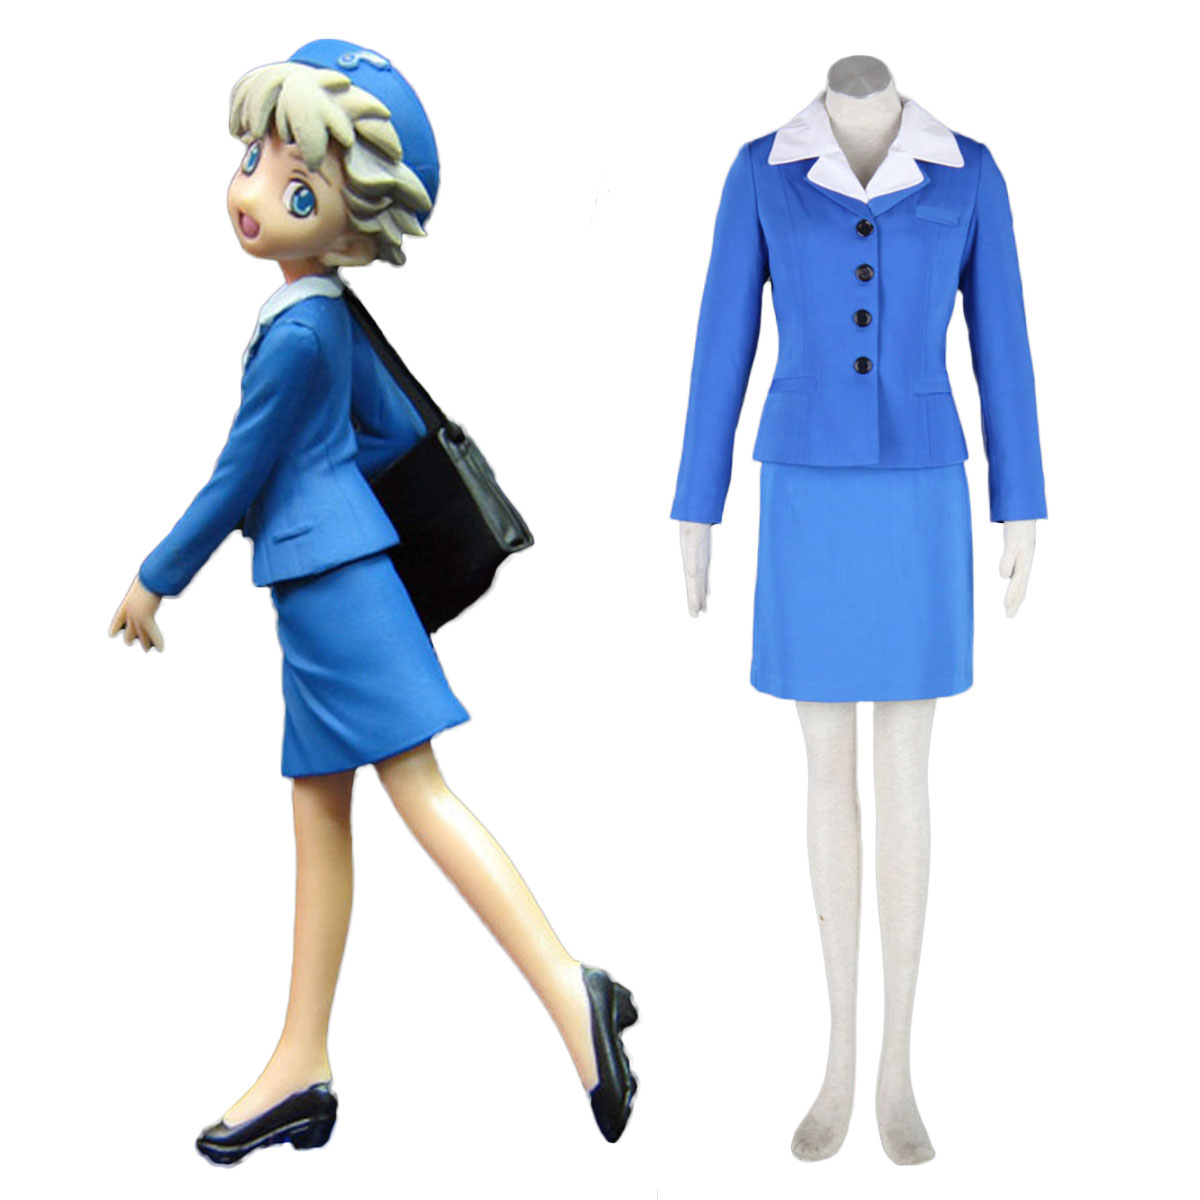 Aviation Uniform Culture Stewardess 2 Cosplay Costumes AU